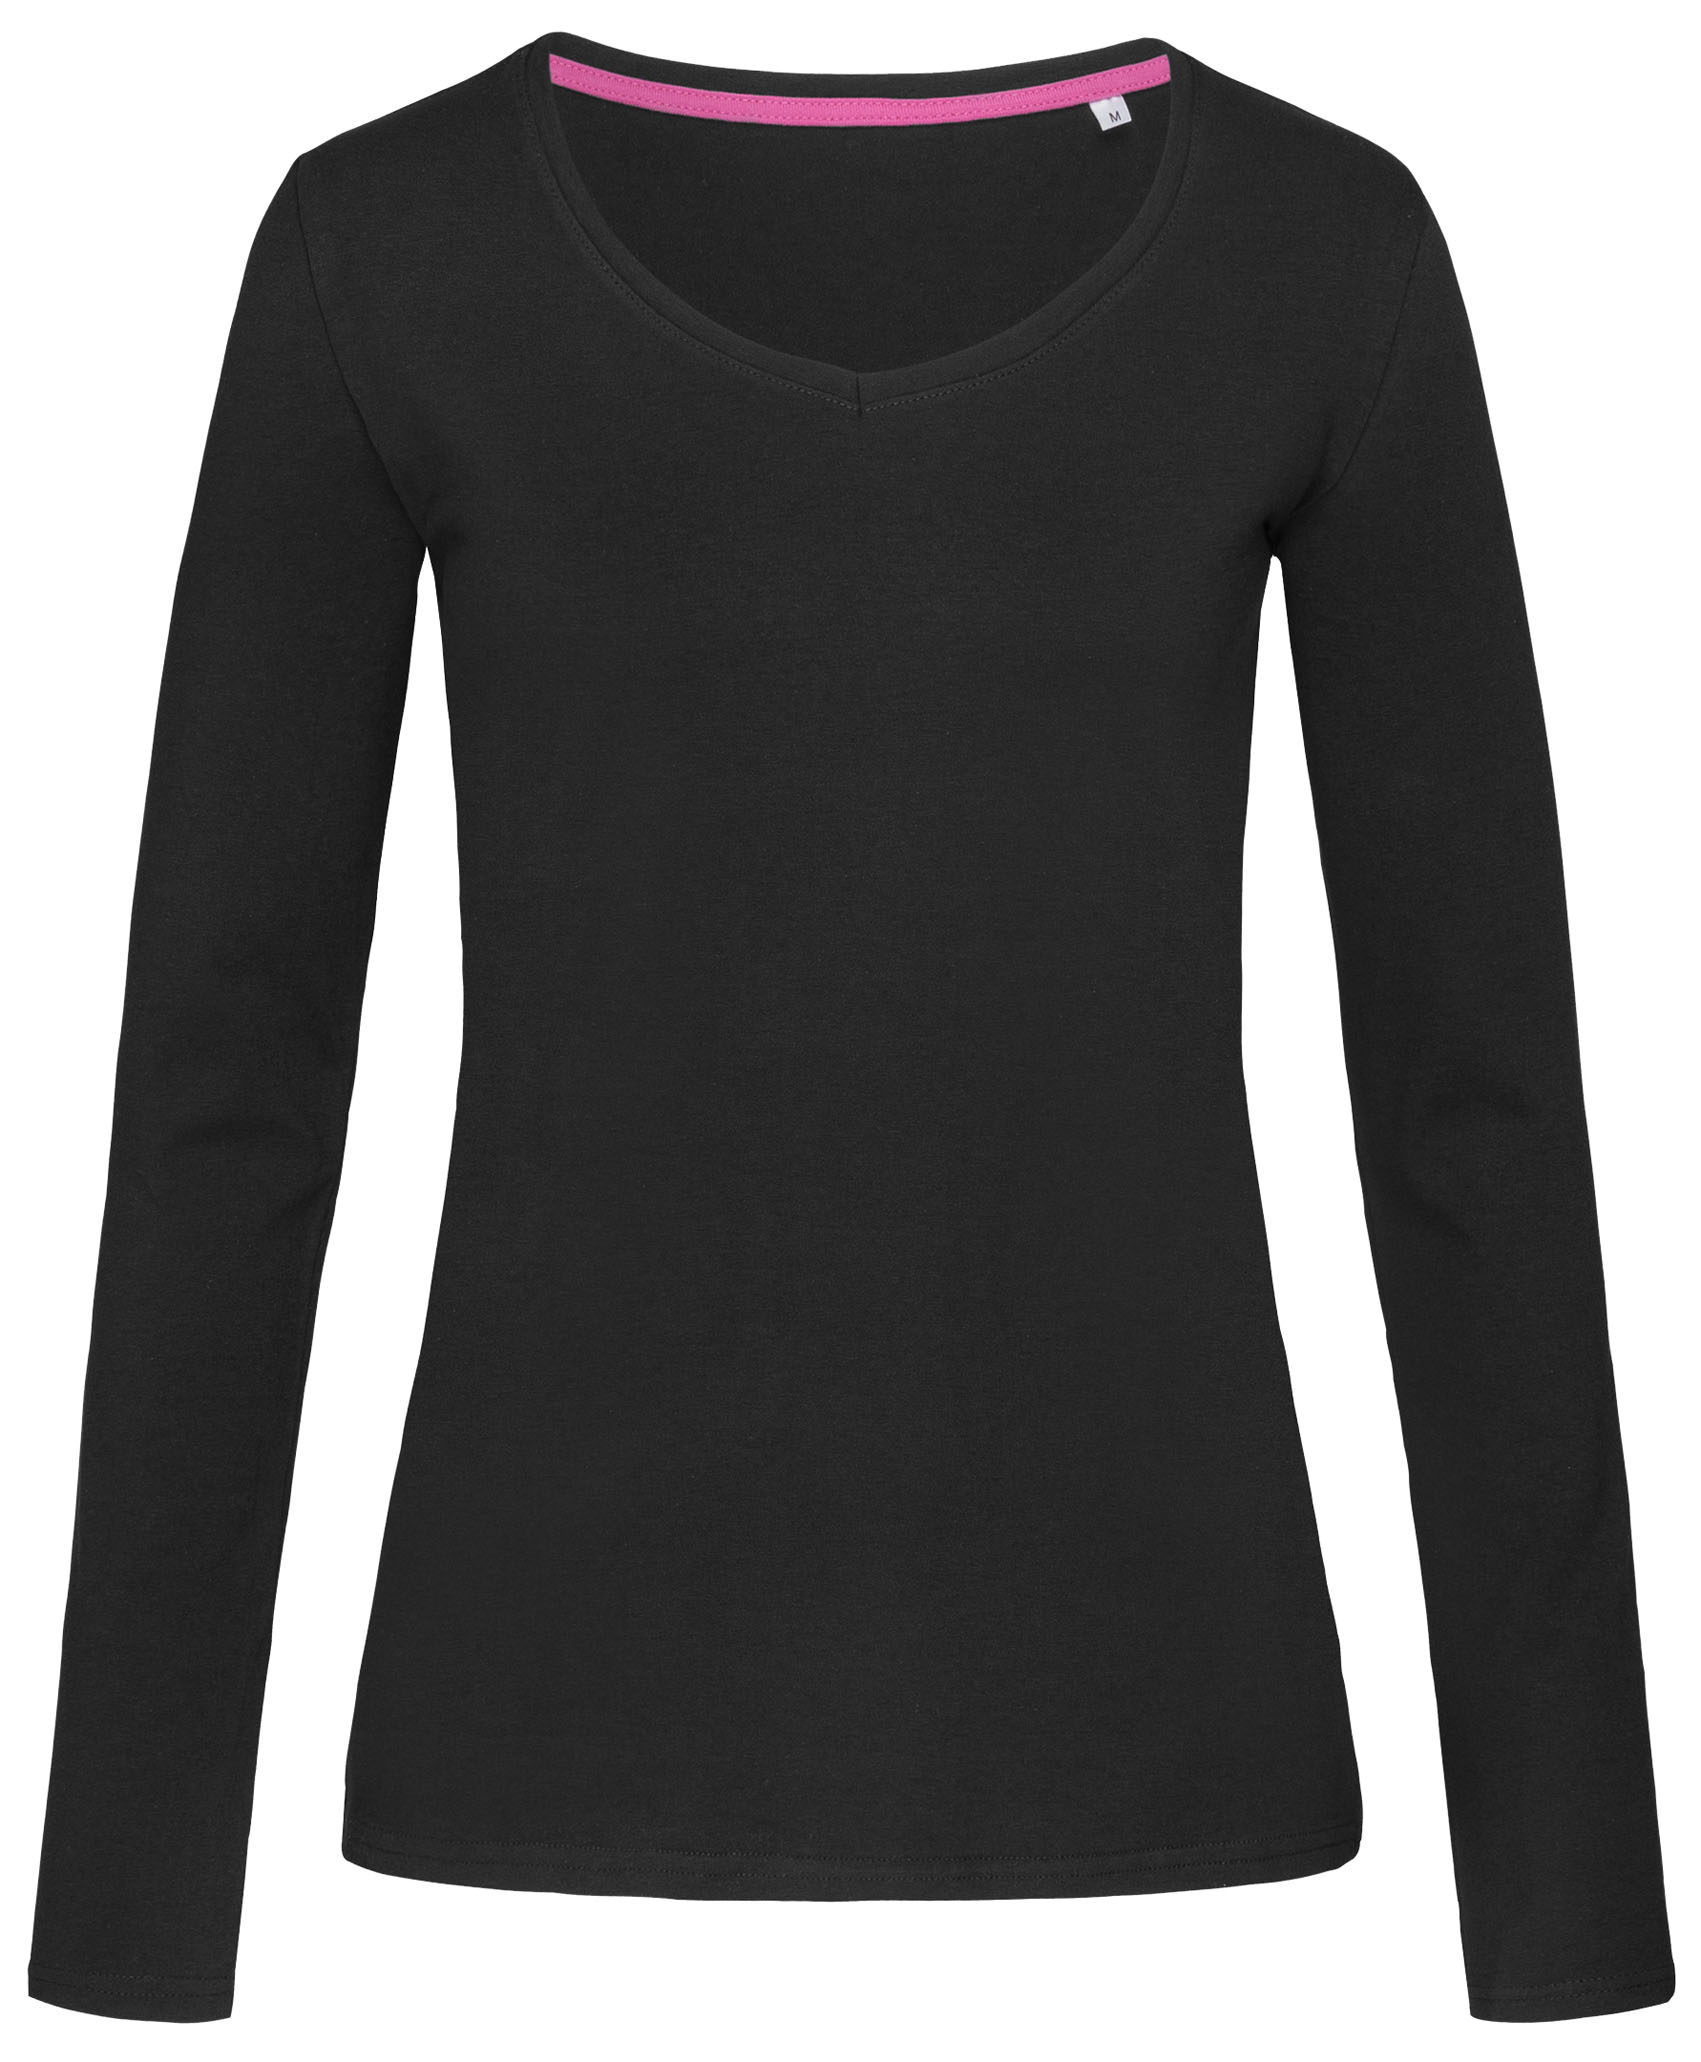 Stedman T-shirt V-neck Claire LS for her